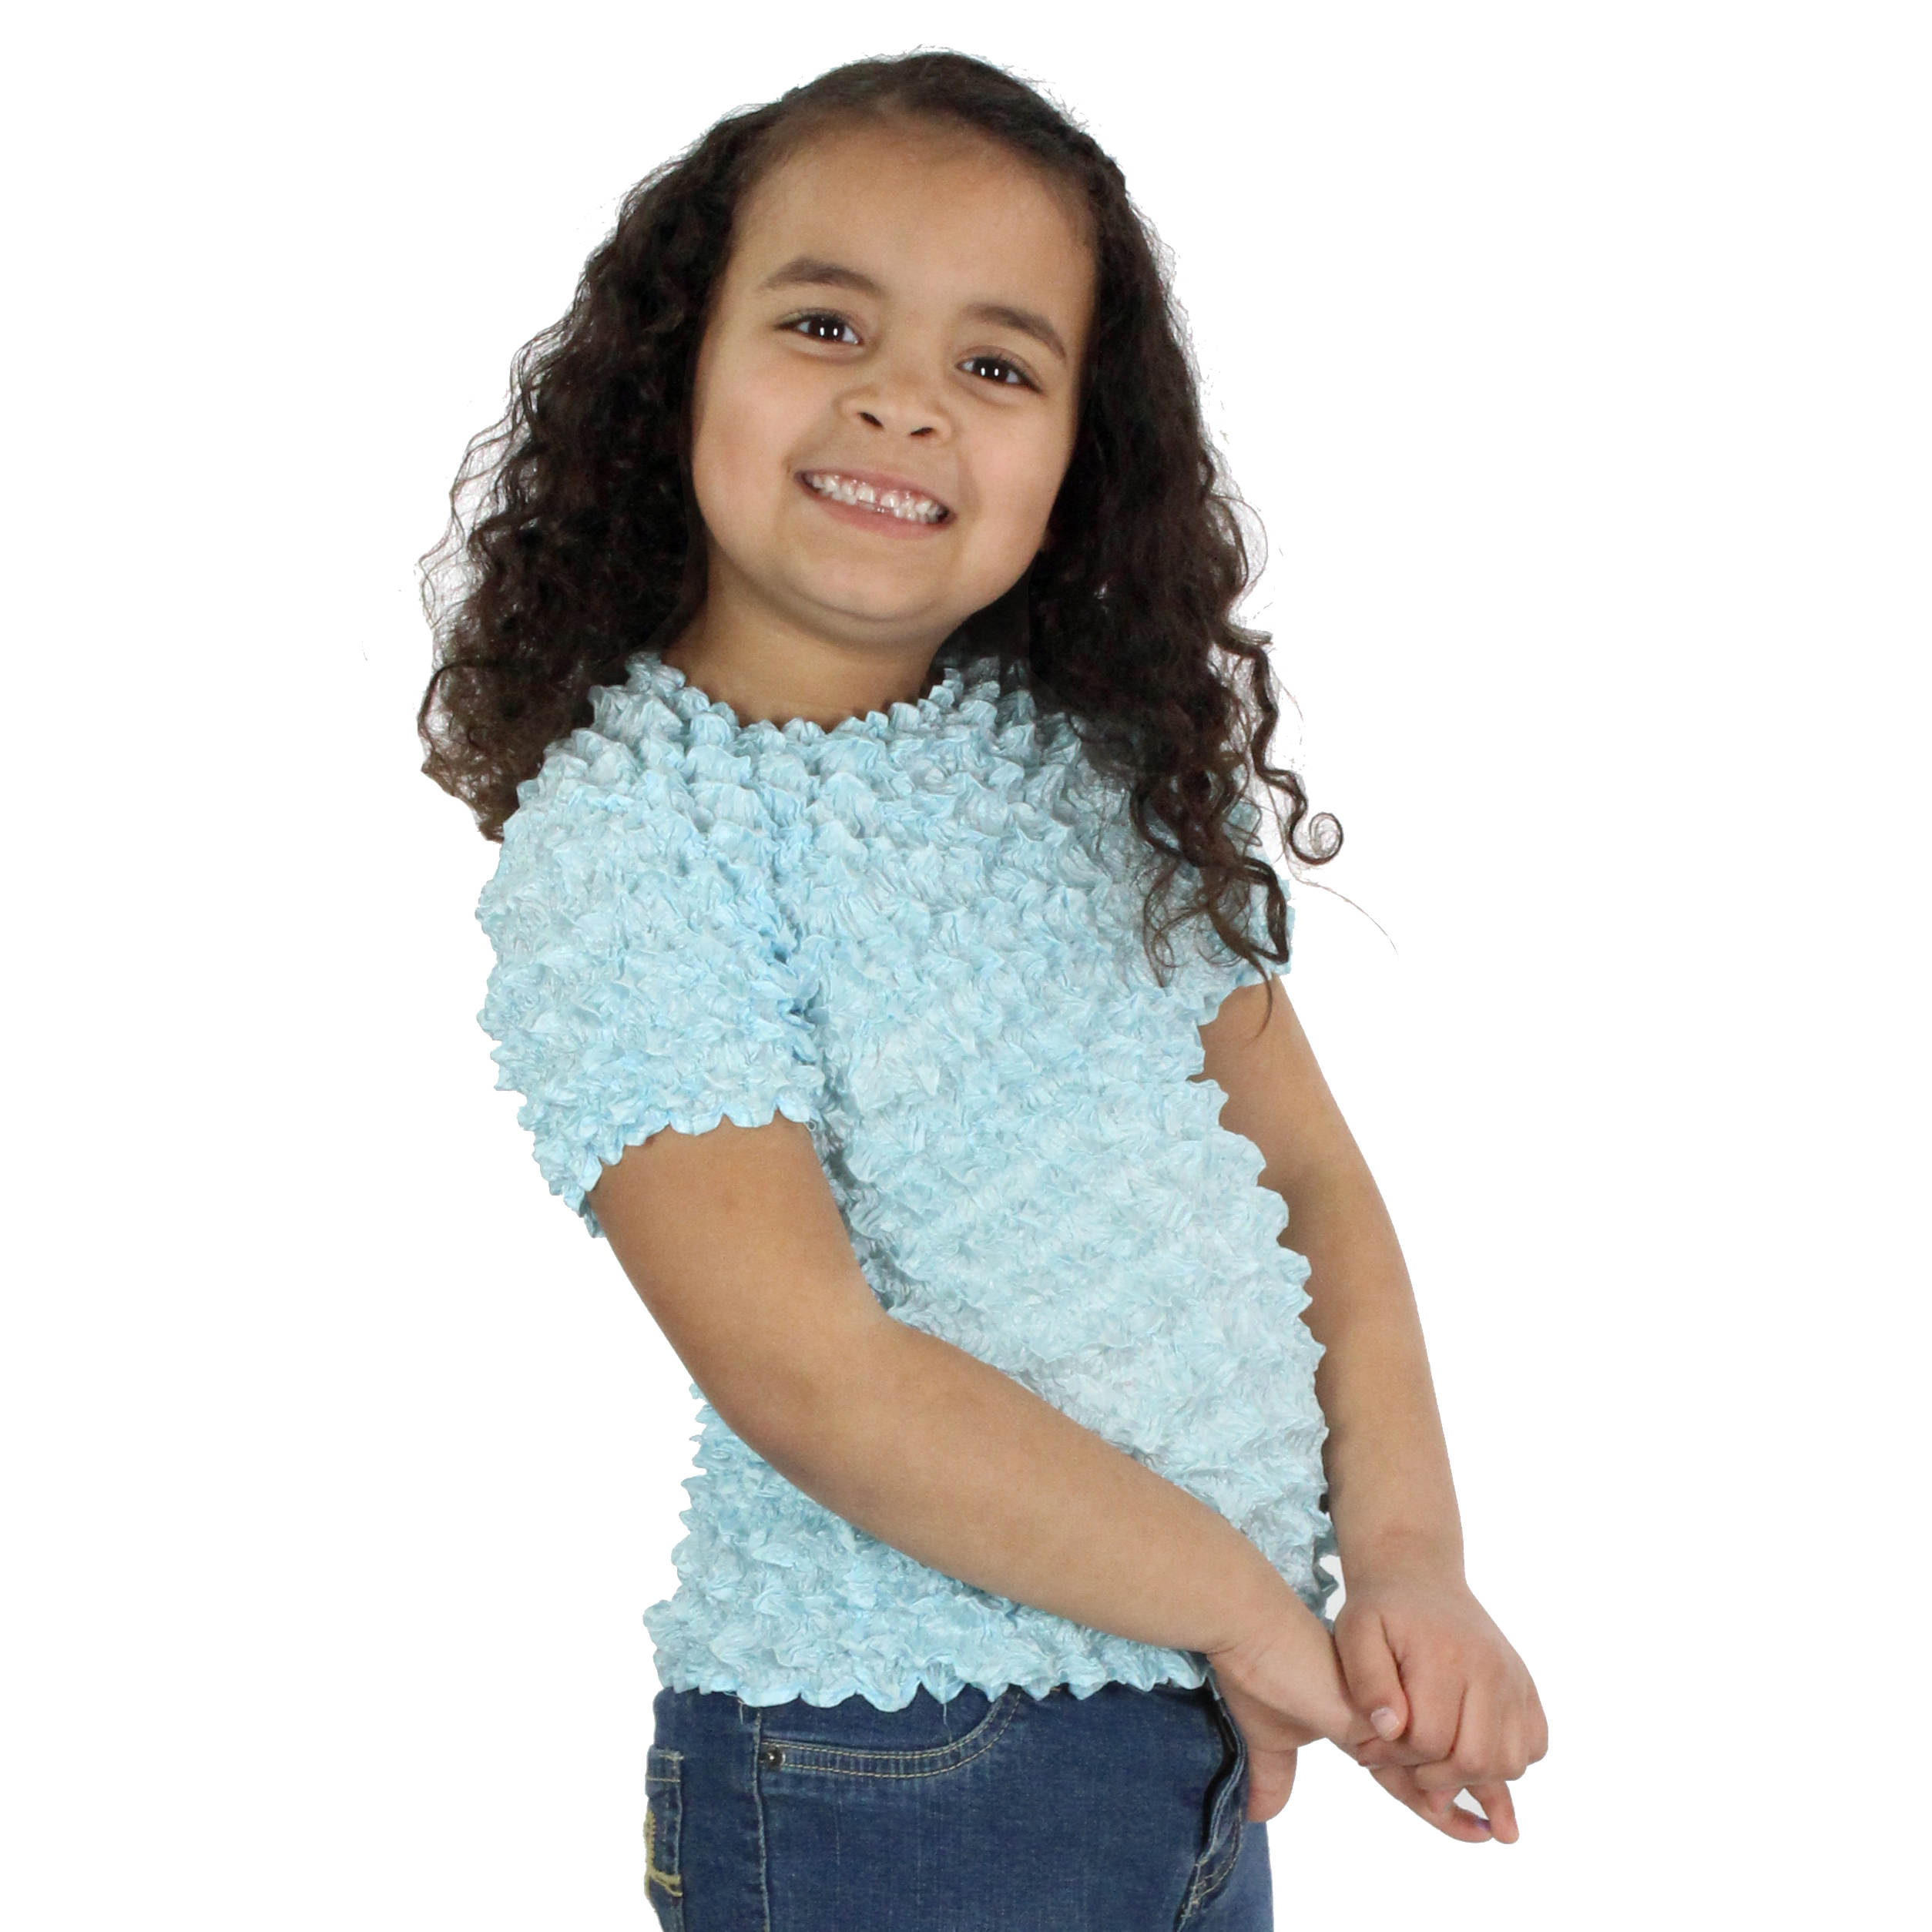 Wholesale Silky Touch Popcorn - Kids Size  Short Sleeve Sky Blue - Toddler - Tween